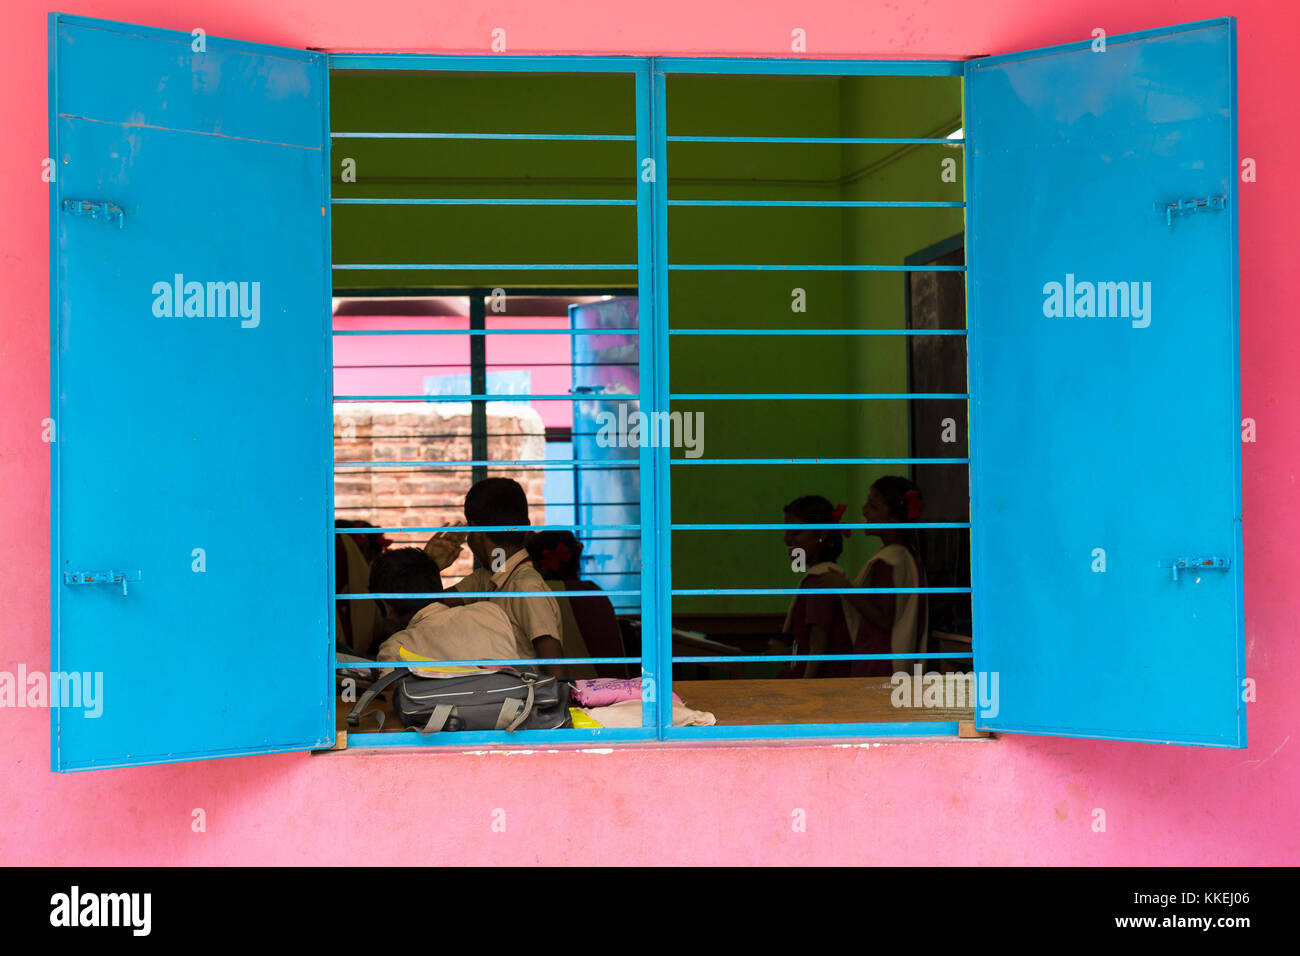 PONDICHERY, PUDUCHERY, INDIA - SEPTEMBER 04, 2017. Pink and blue school with chidren looking out the window Stock Photo